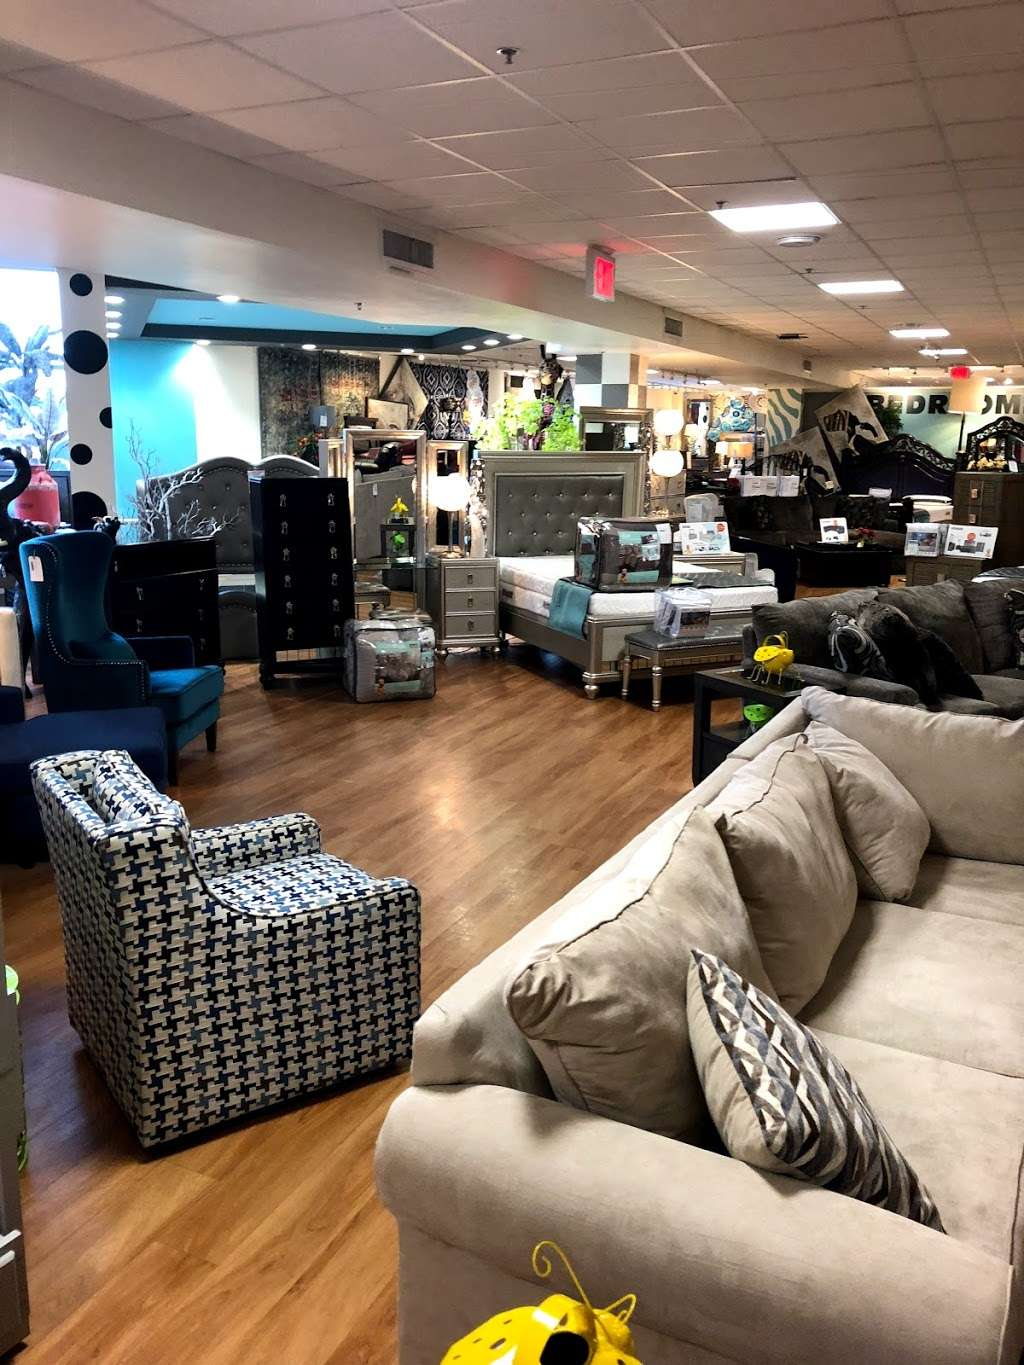 Furniture Store Flatbush Ave : furniture, store, flatbush, Where, Closest, Bob's, Discount, Furniture